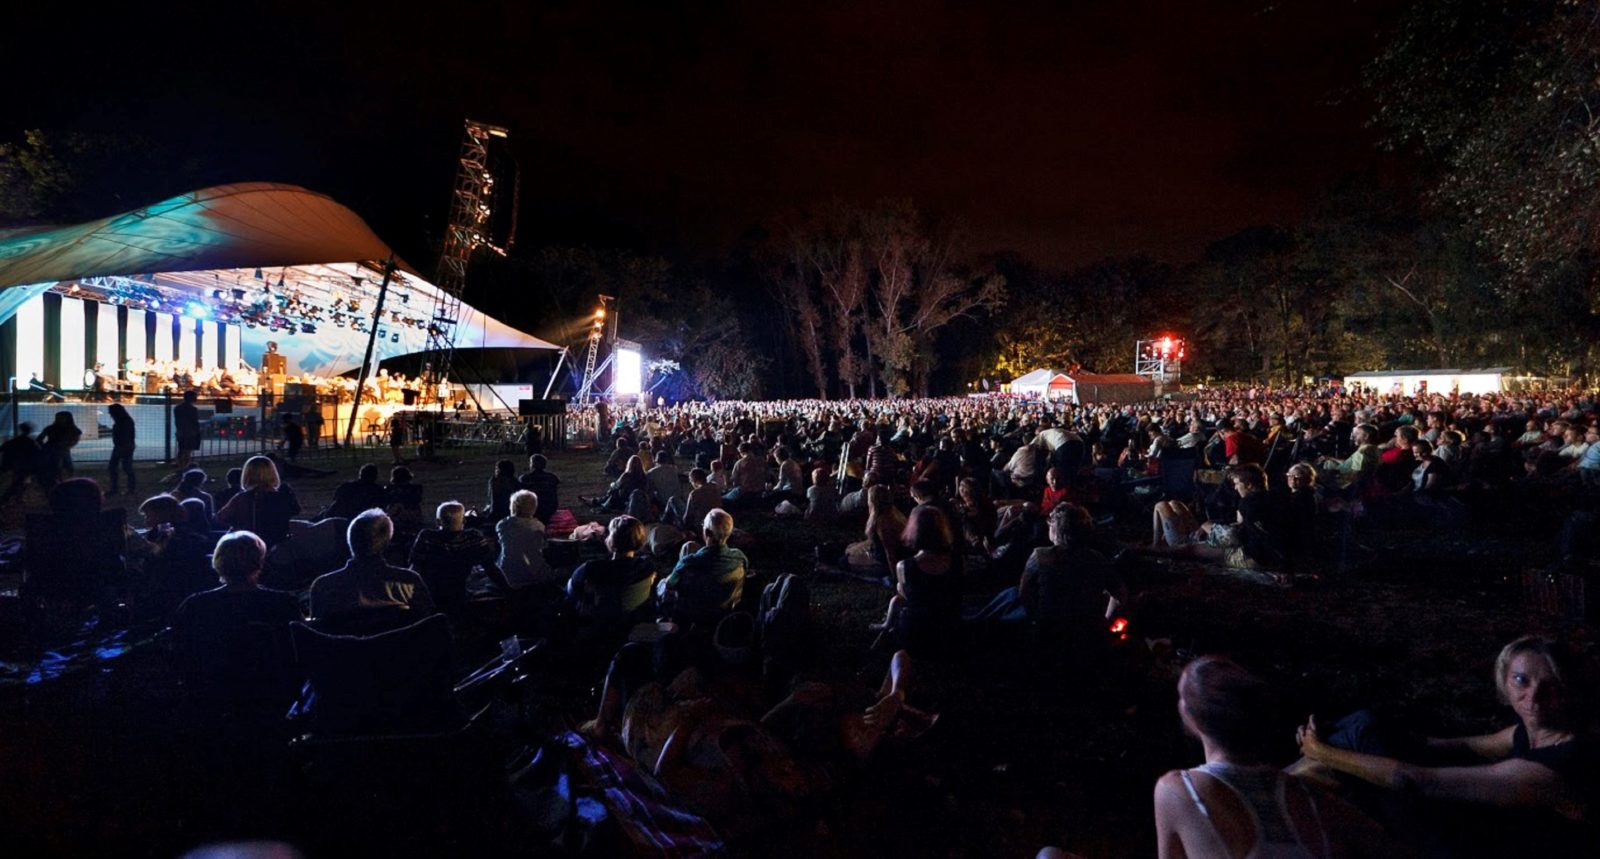 People sitting in Commonwealth Park for Symphony inthe Park